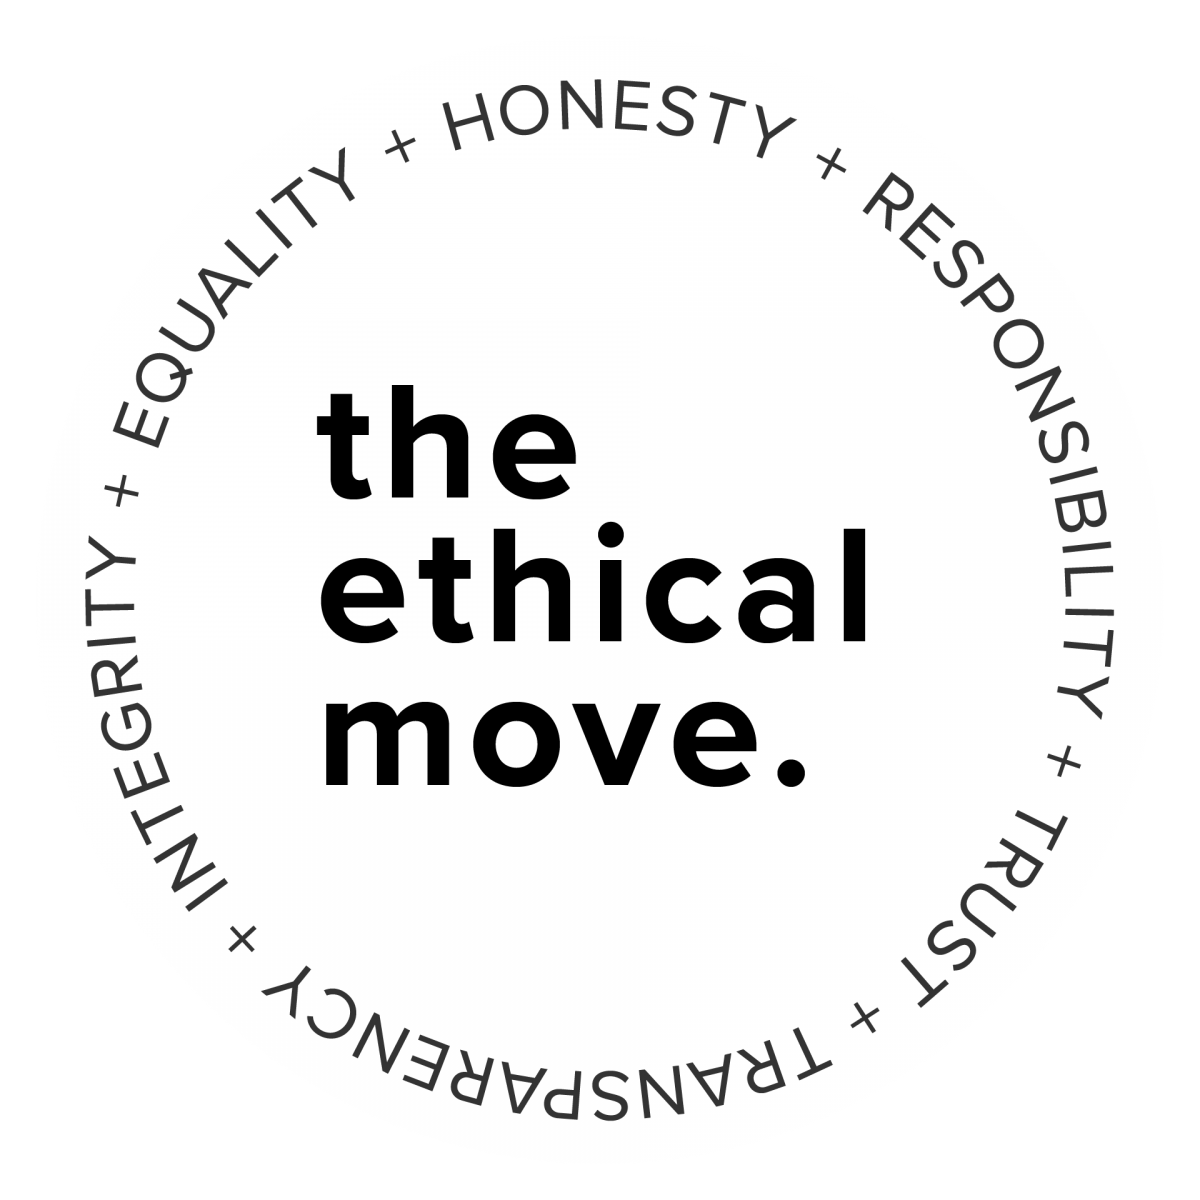 The ethical move pledge